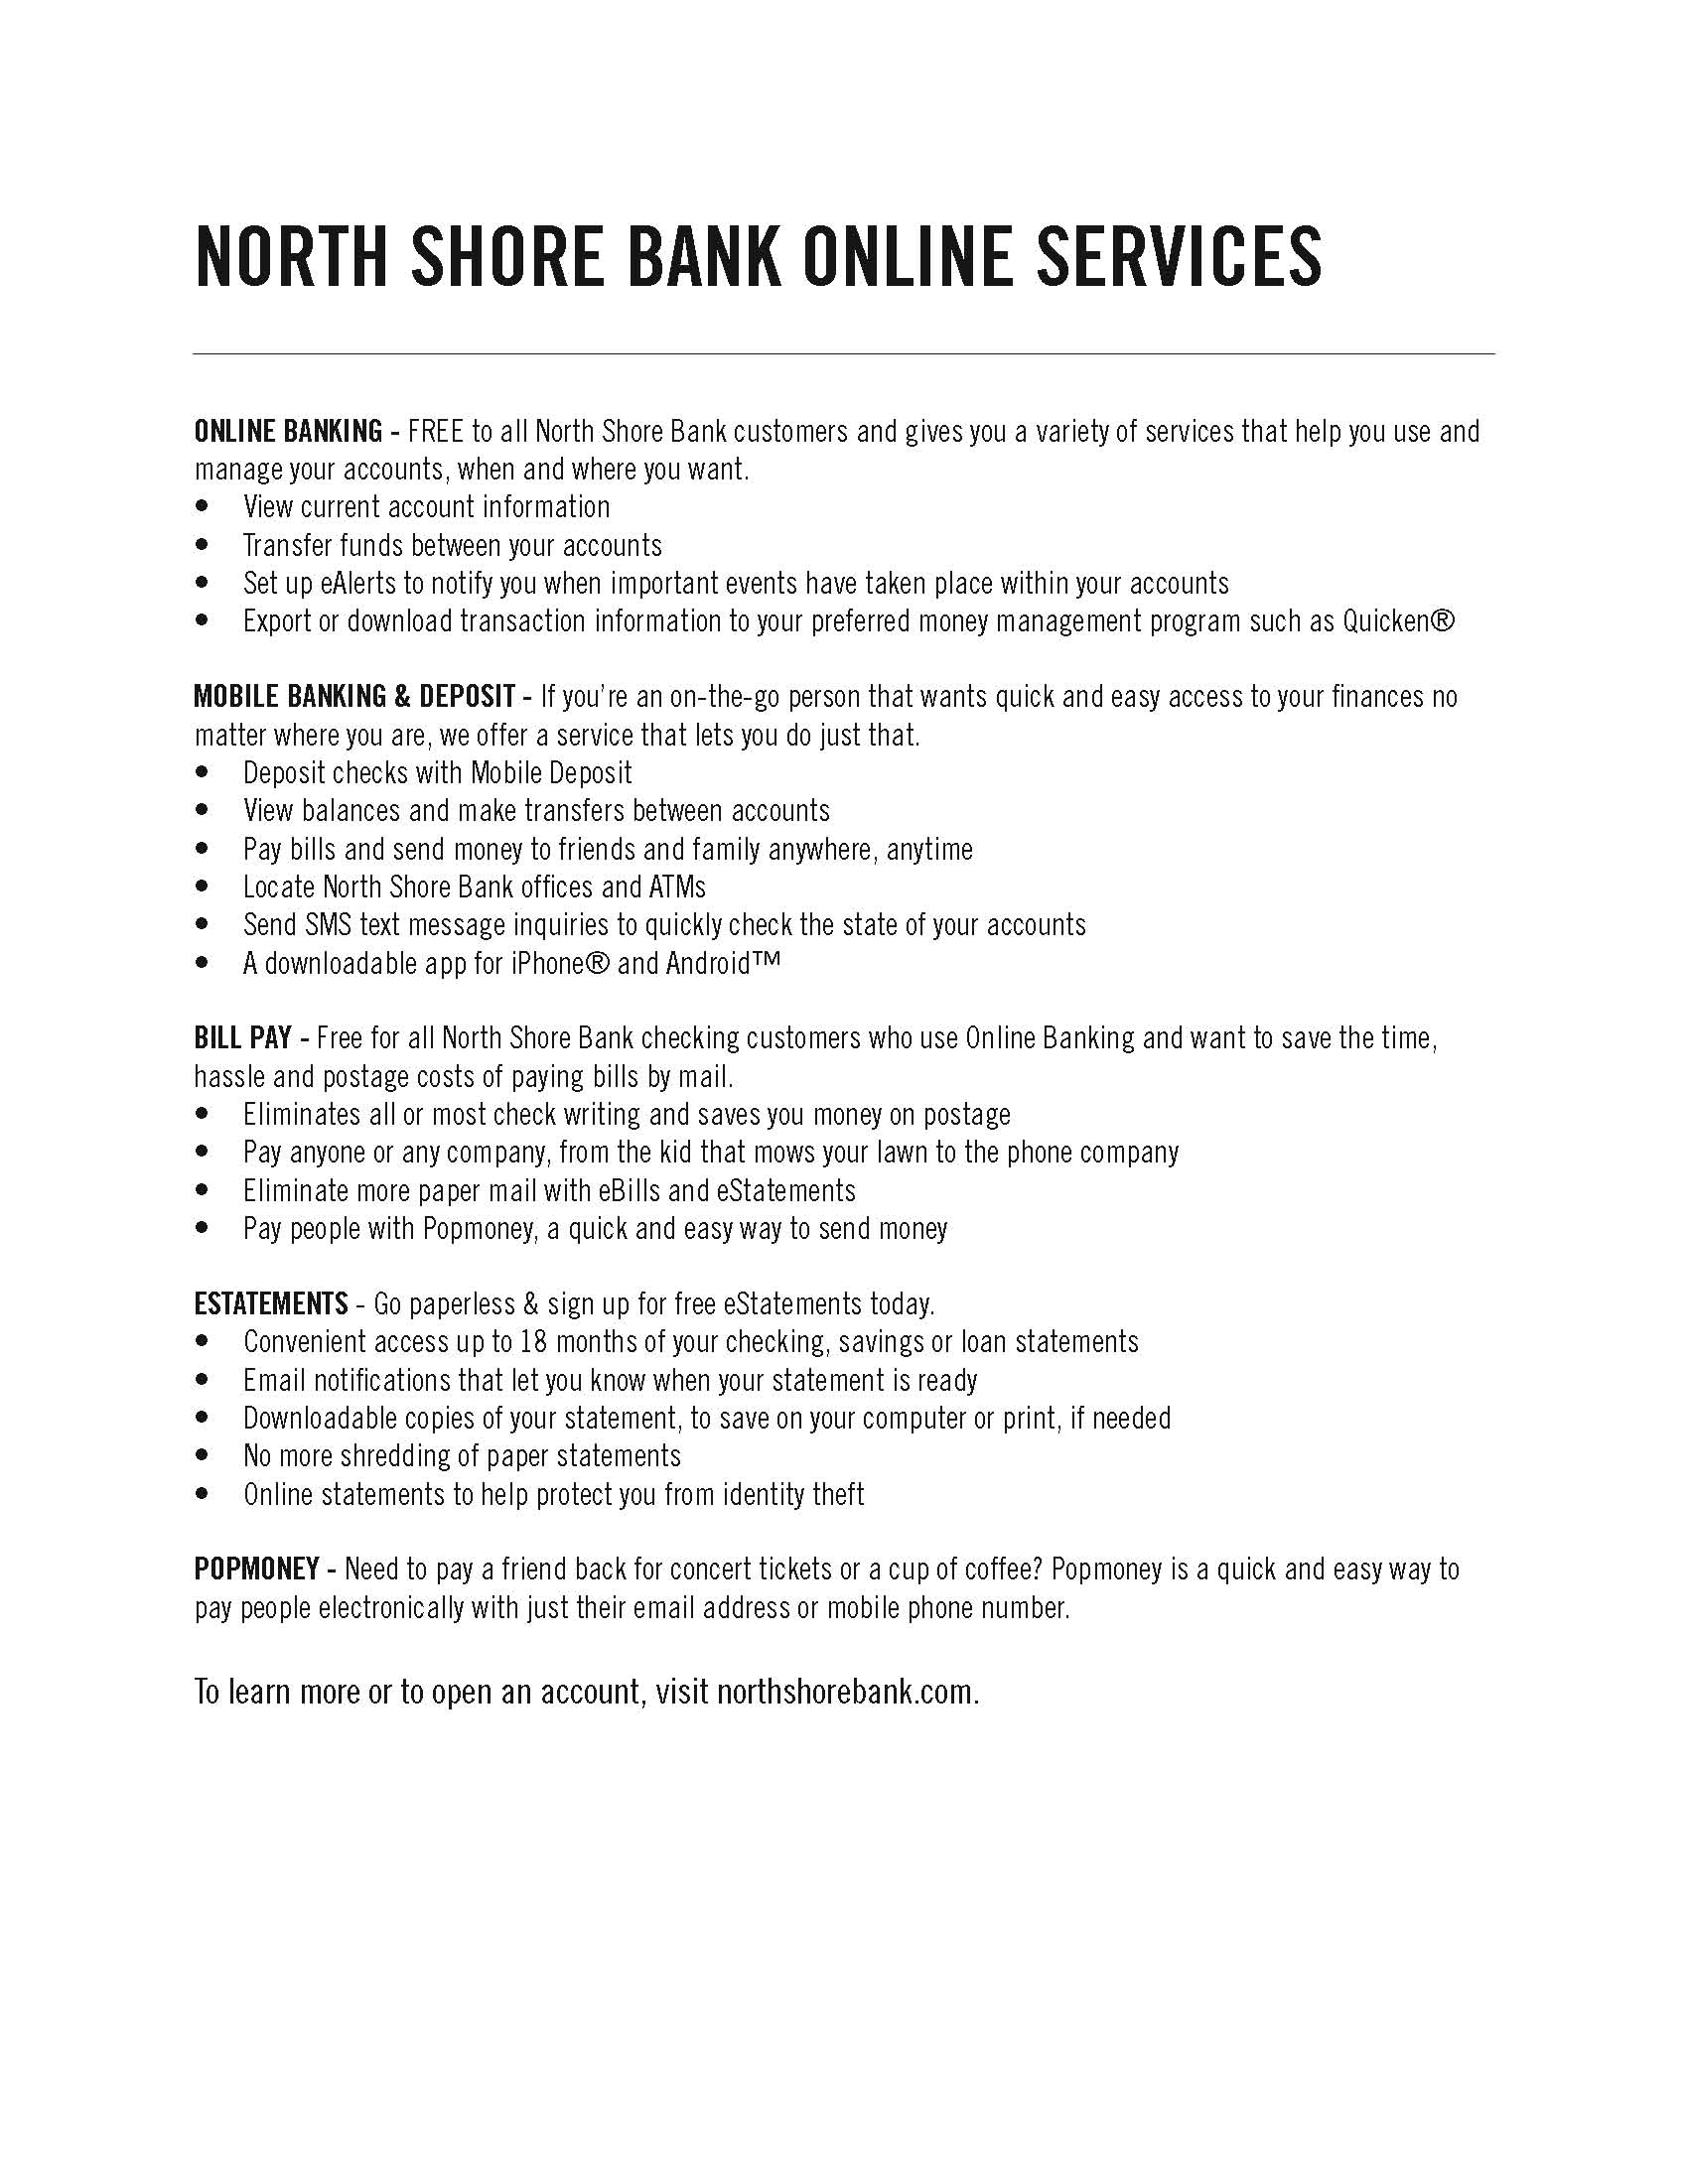 Online Services | North Shore Bank